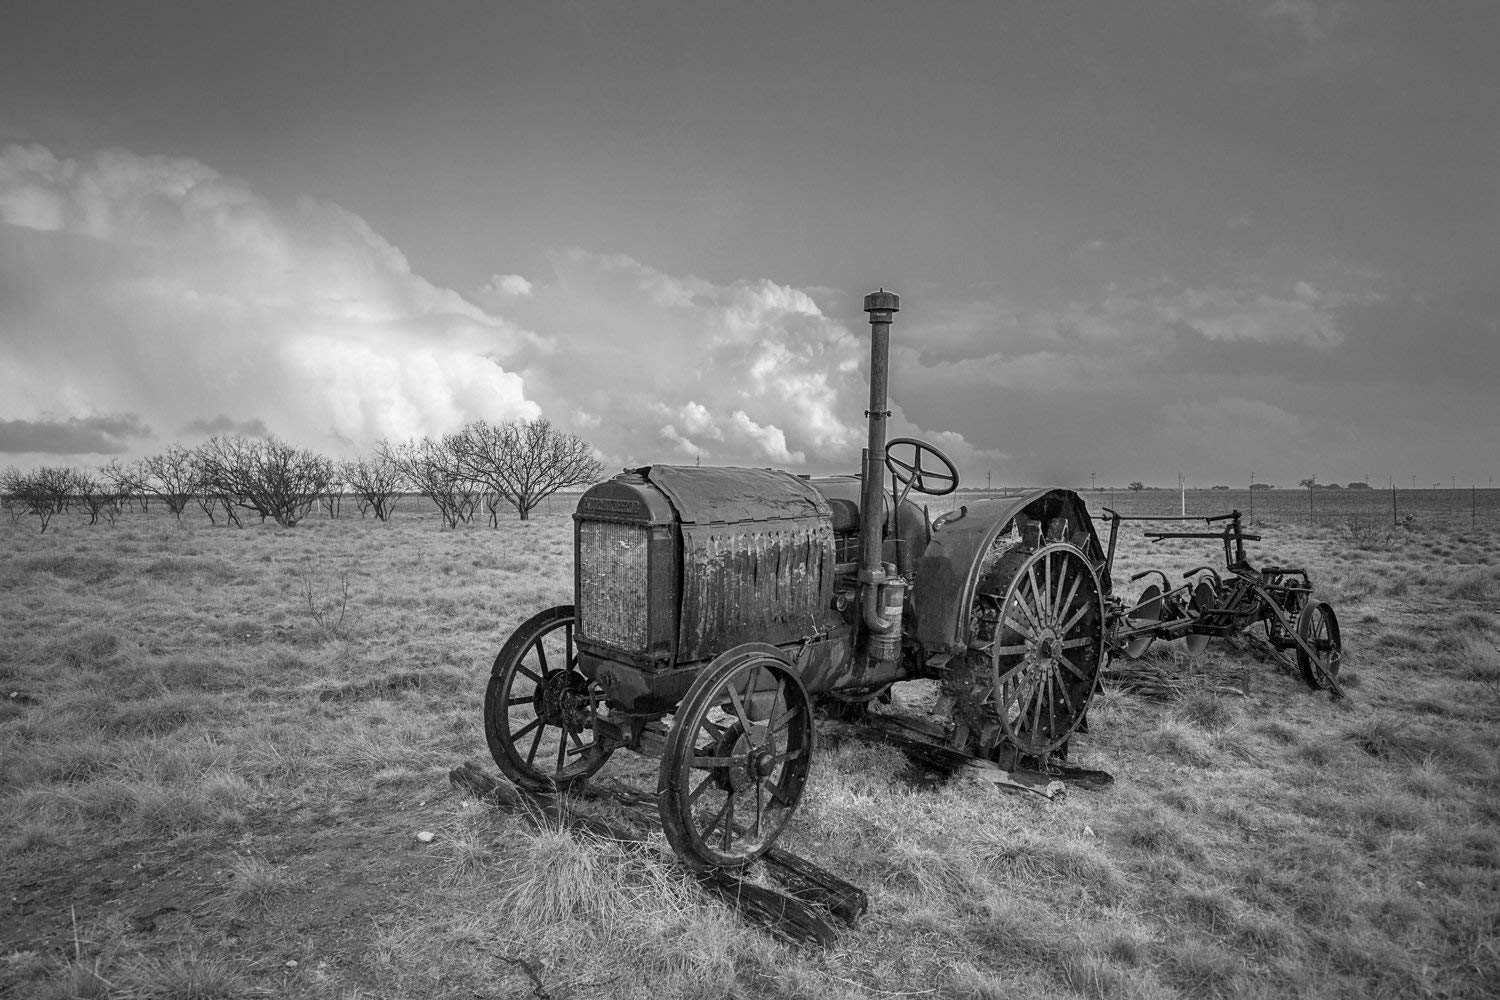 Tractor Photography Wall Art Print - Picture of Rustic McCormick-Deering Tractor in Southern Texas Country Decor 5x7 to 30x45